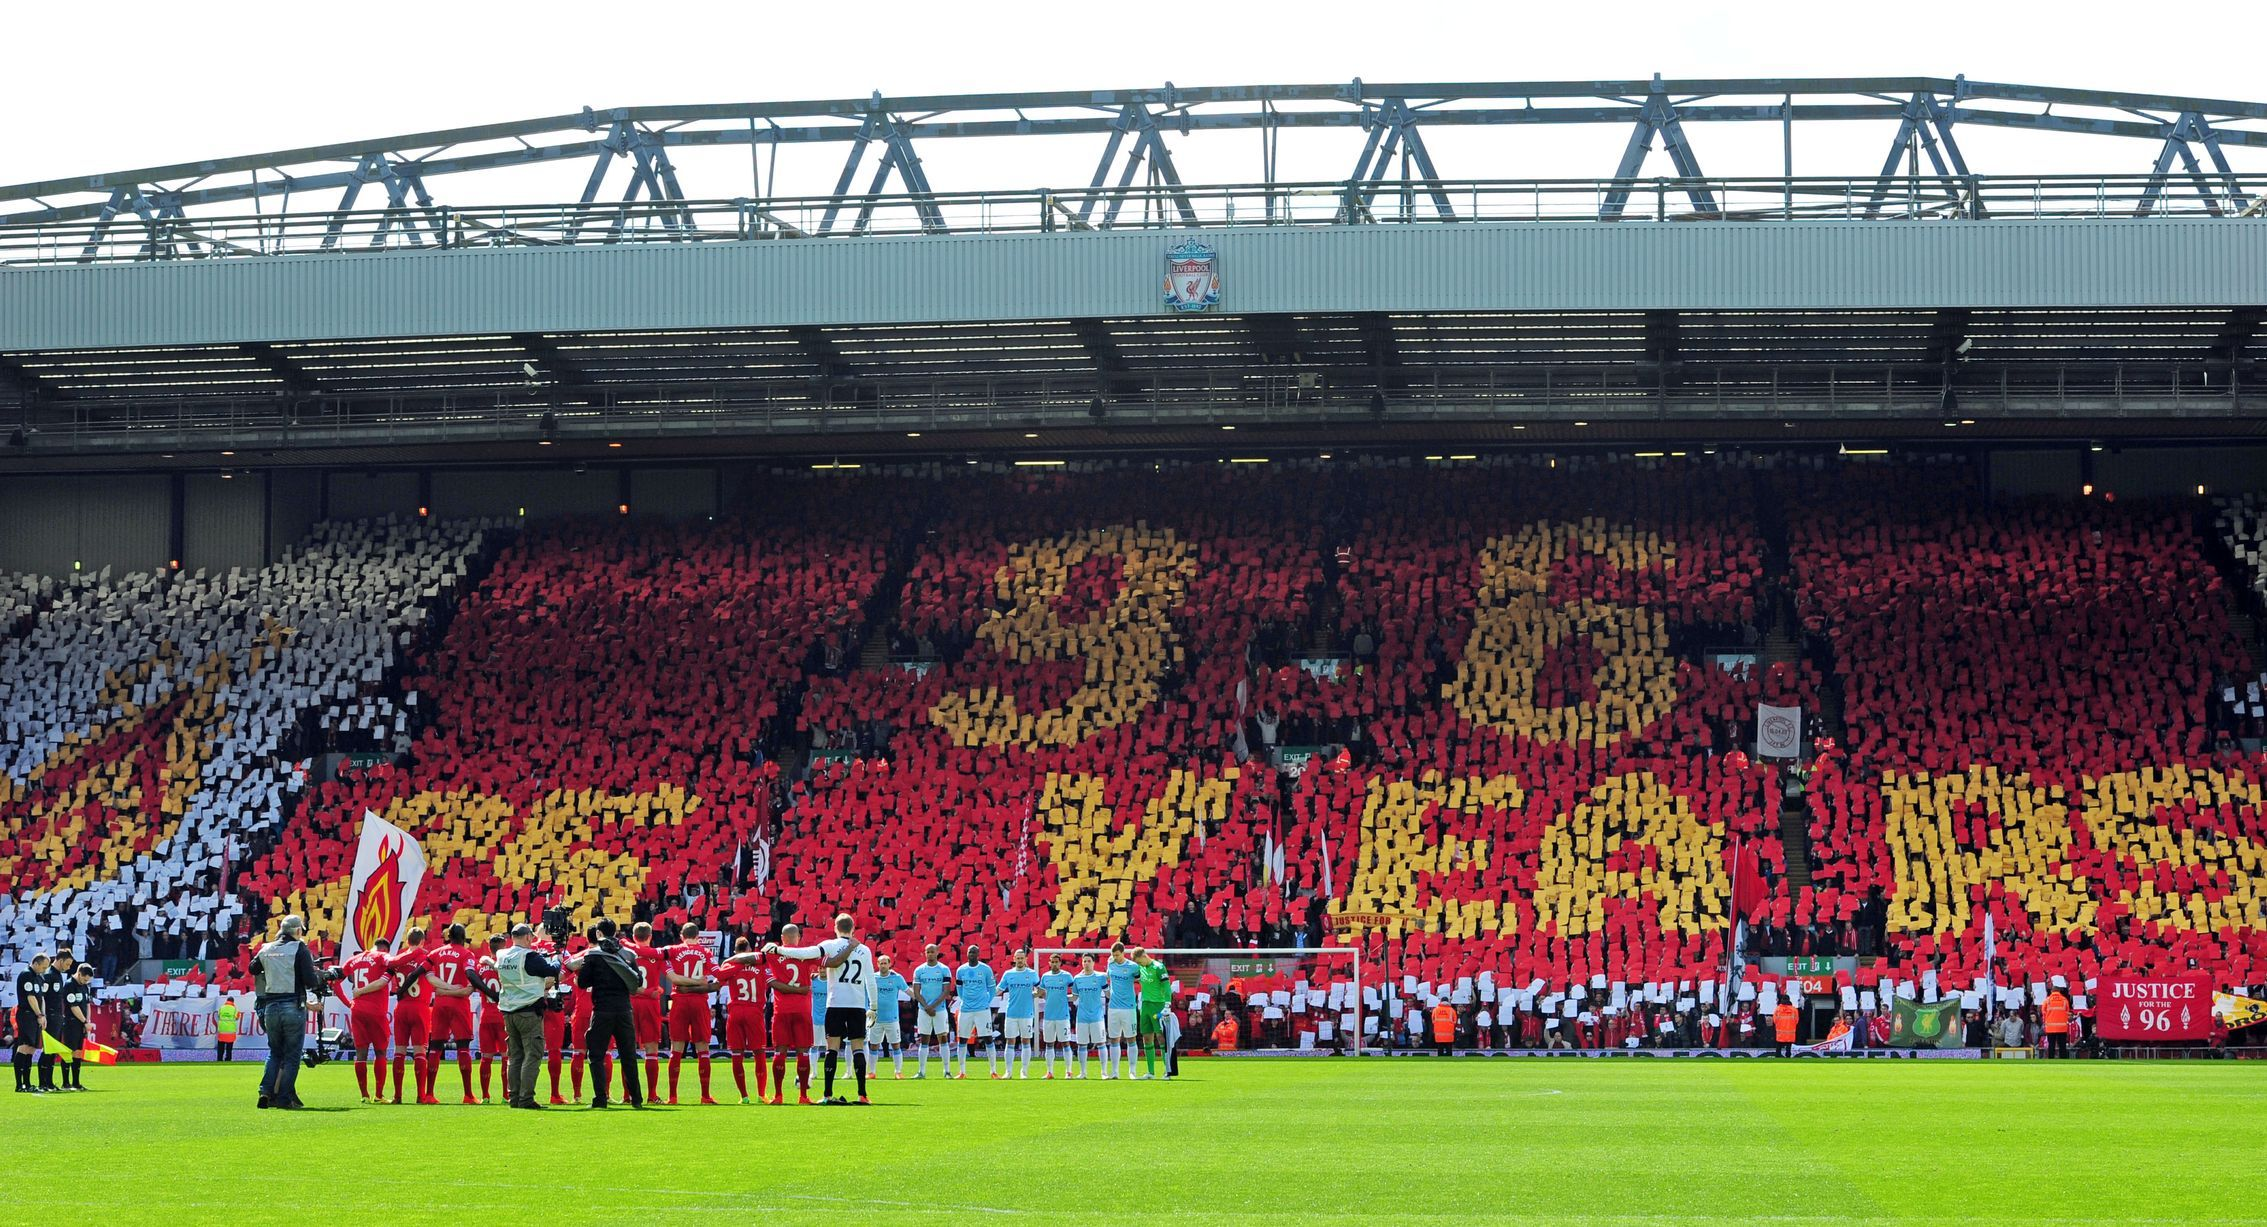 Pin on This is Anfield